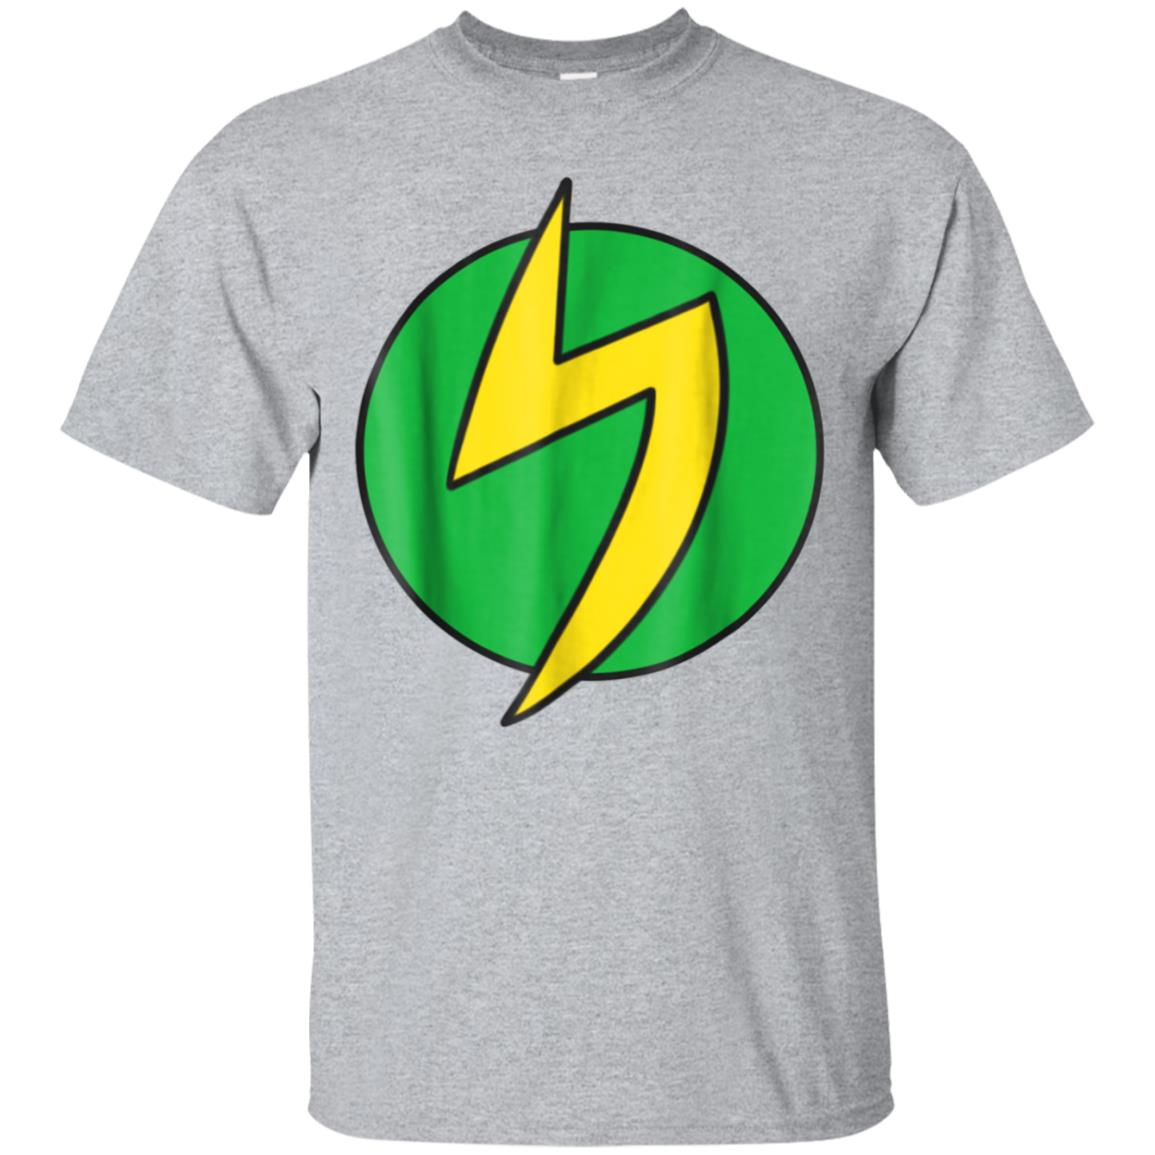 Poweredd Symbol T Shirt 99promocode